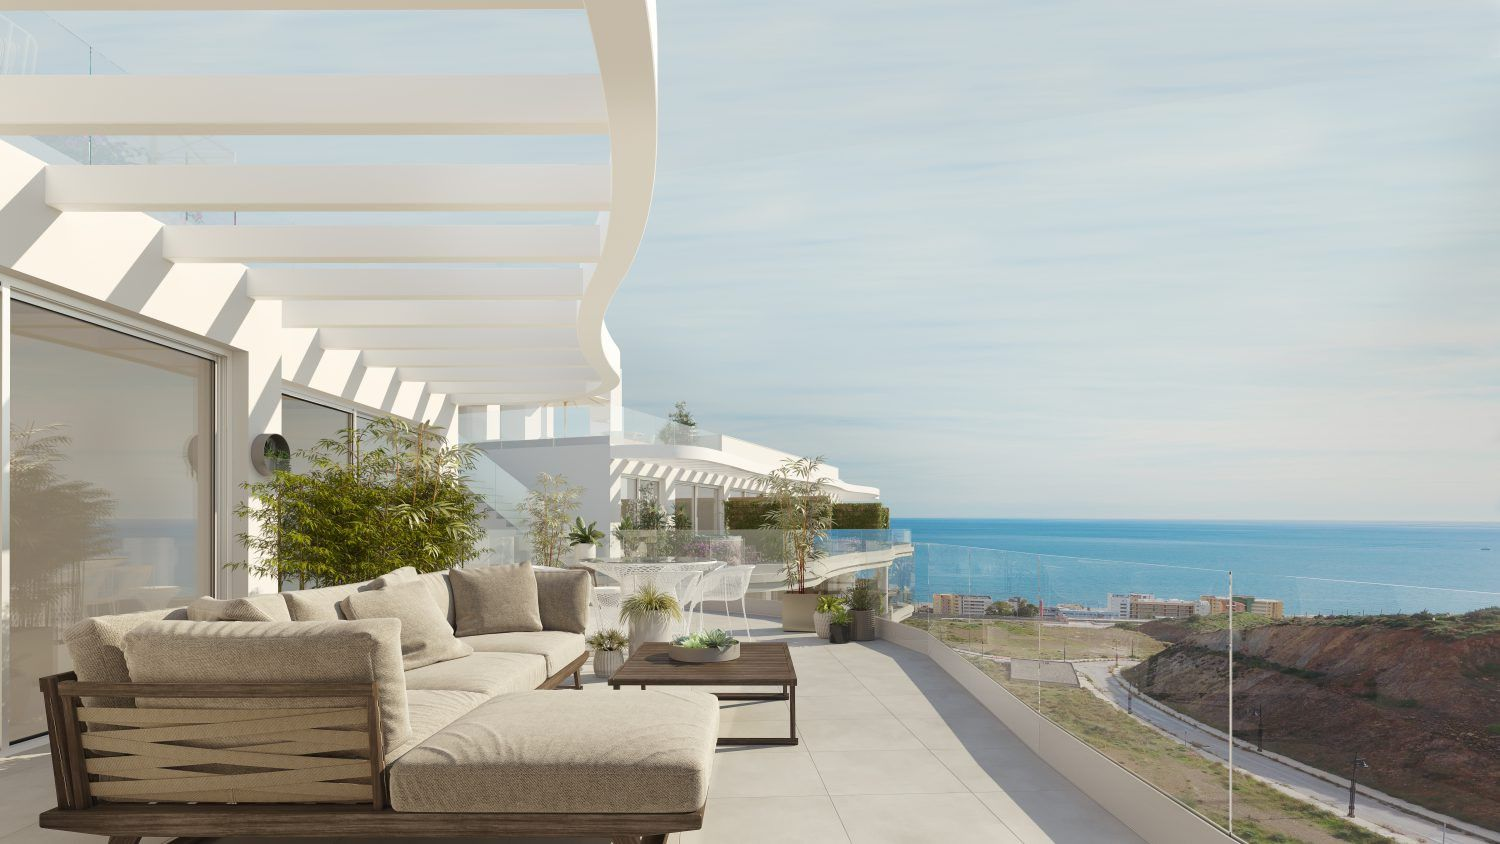 An exclusive development of 82 homes in Fuengirola